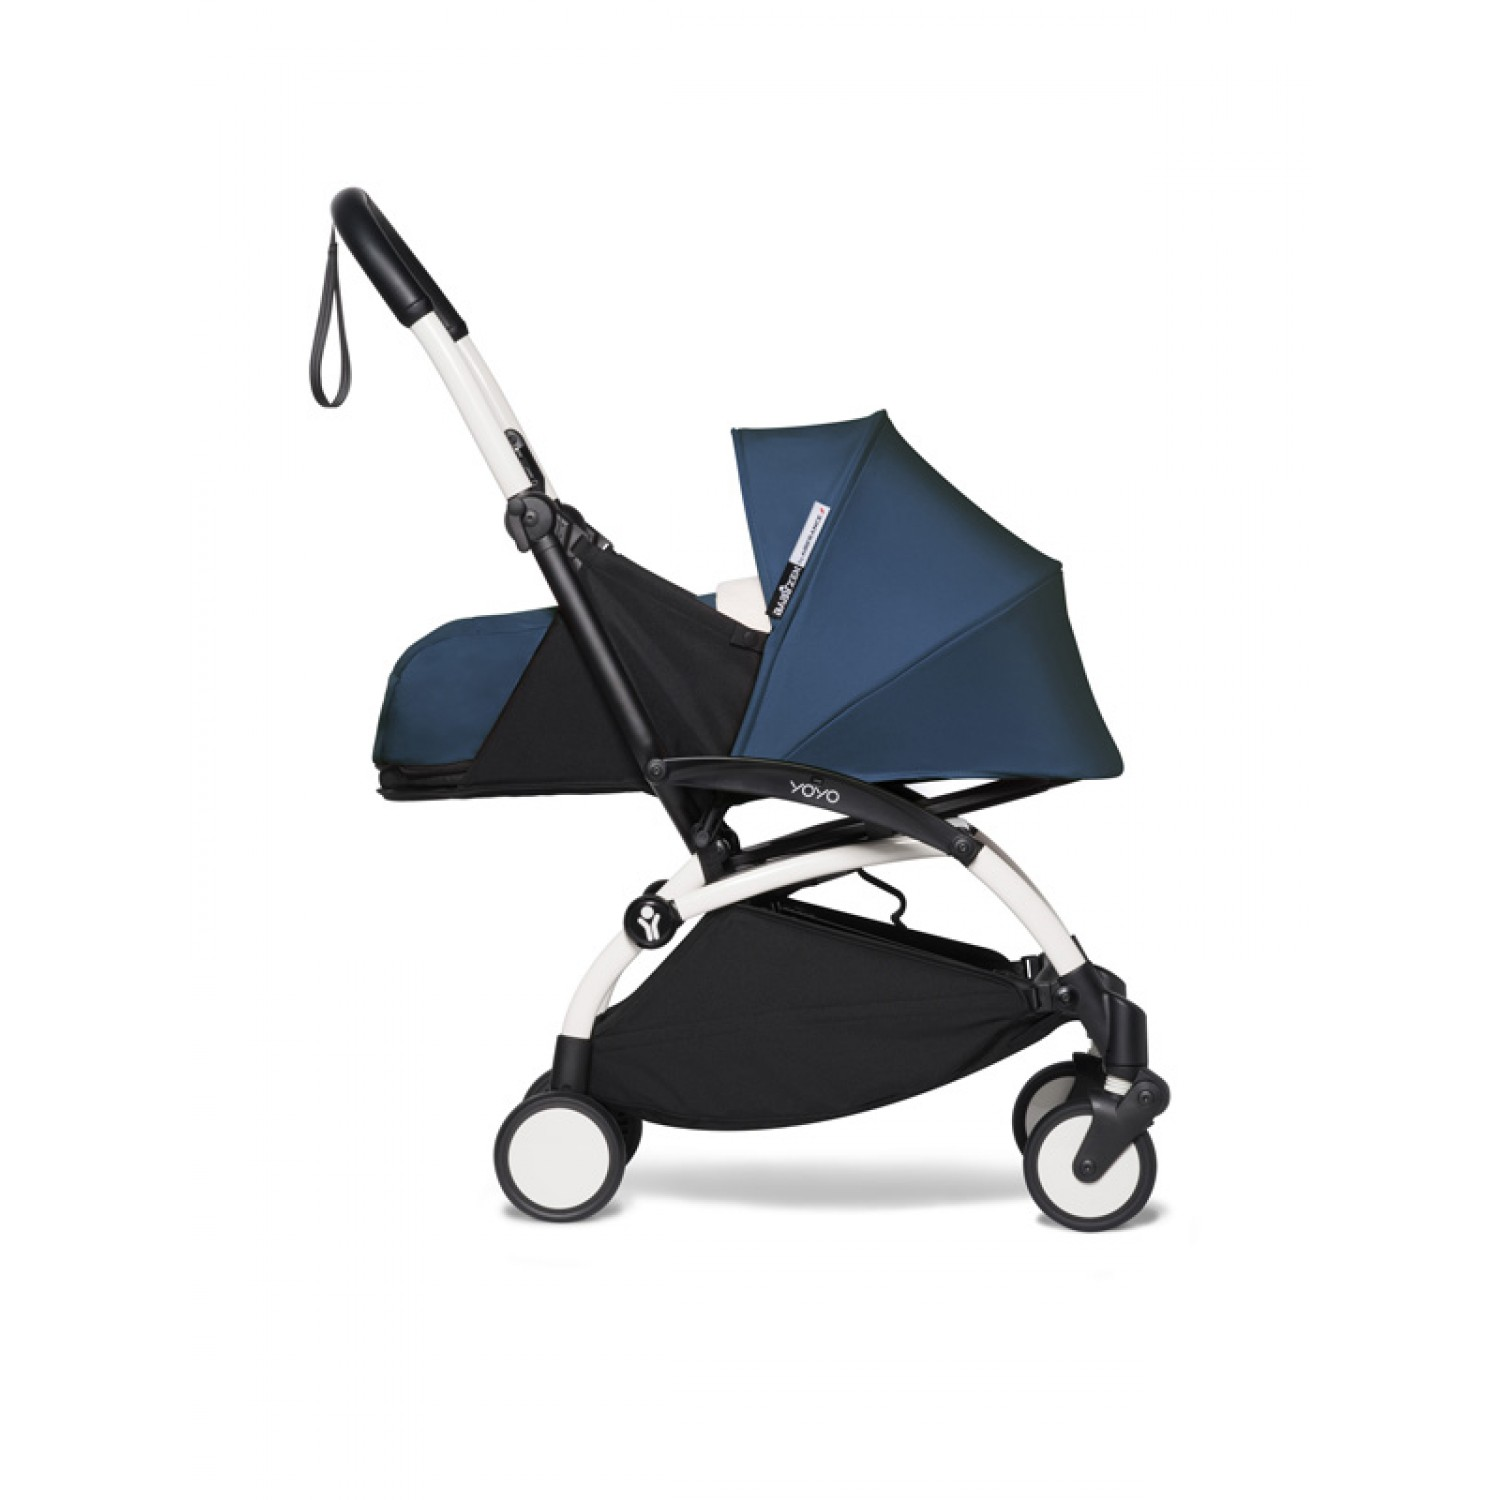 BABYZEN stroller YOYO2 0+ | White Chassis Air France